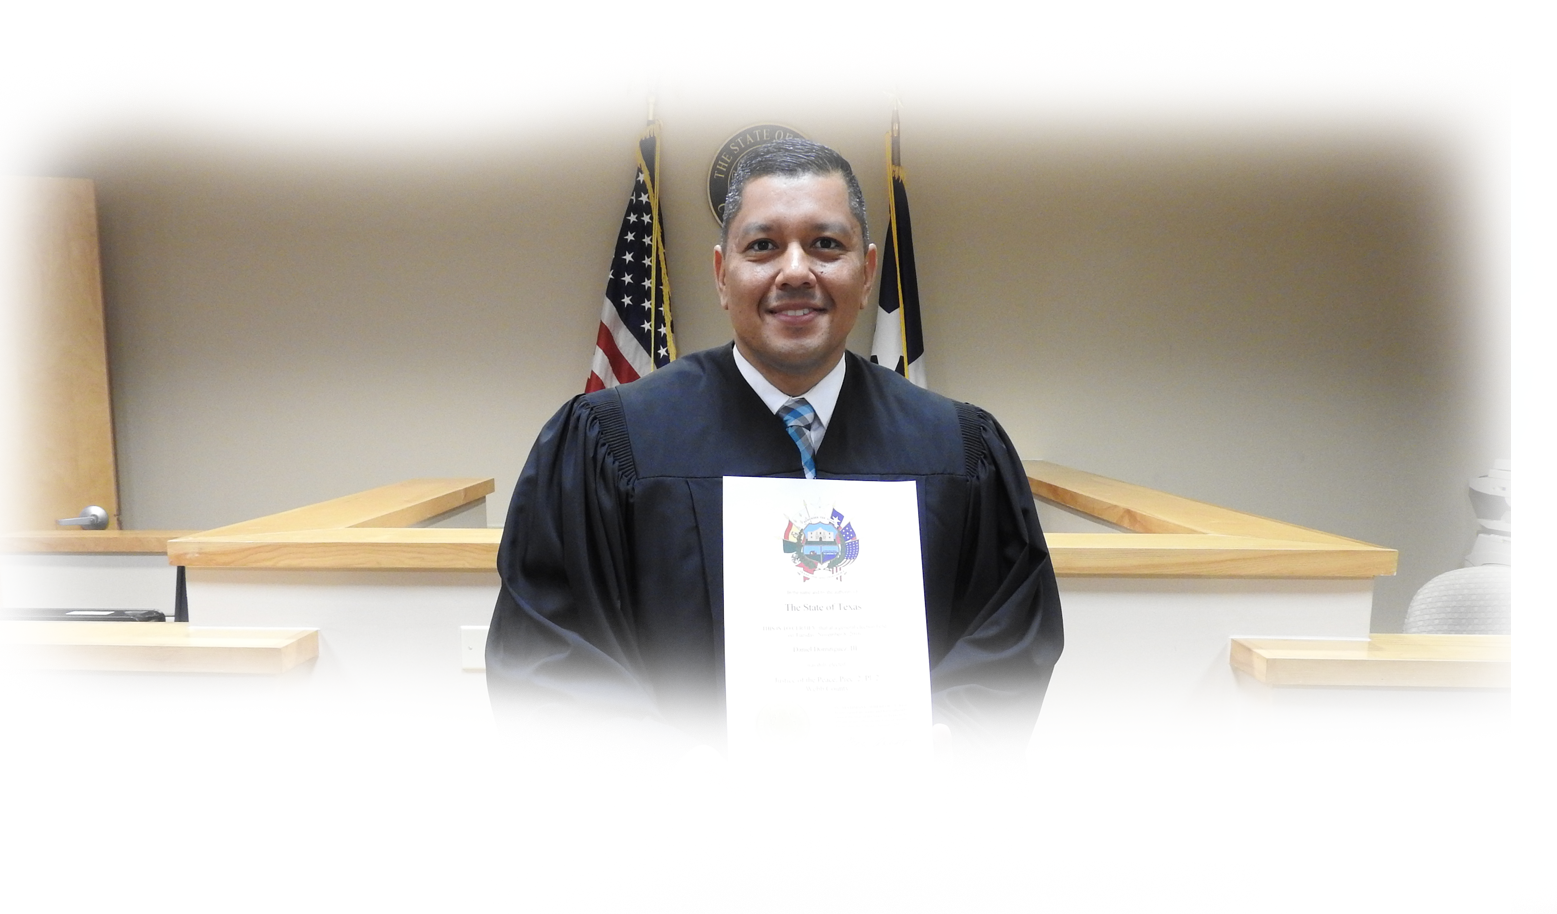 Judge Dominguez in Court Room with award